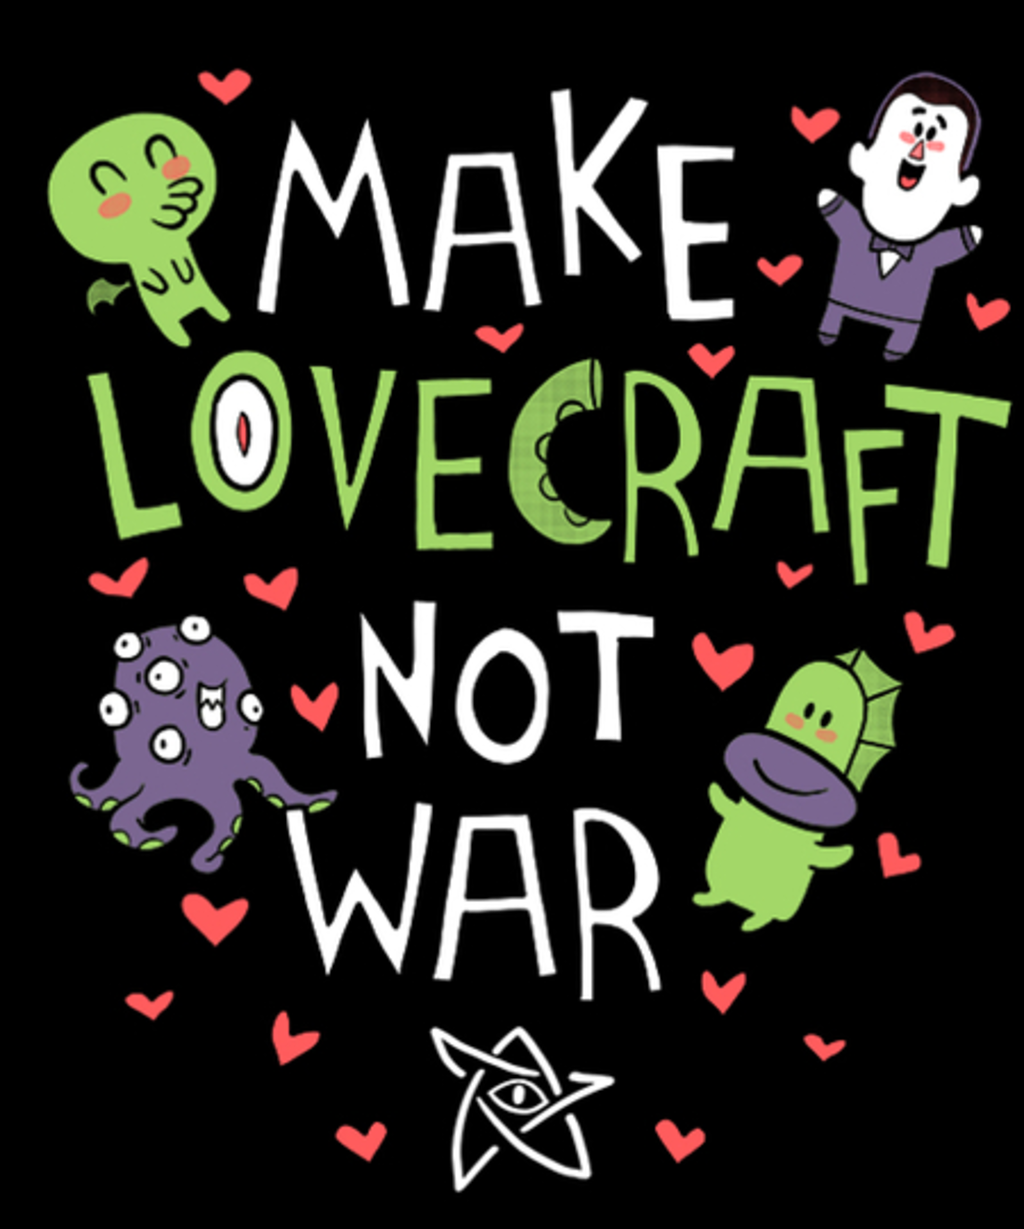 Qwertee: Make Lovecraft